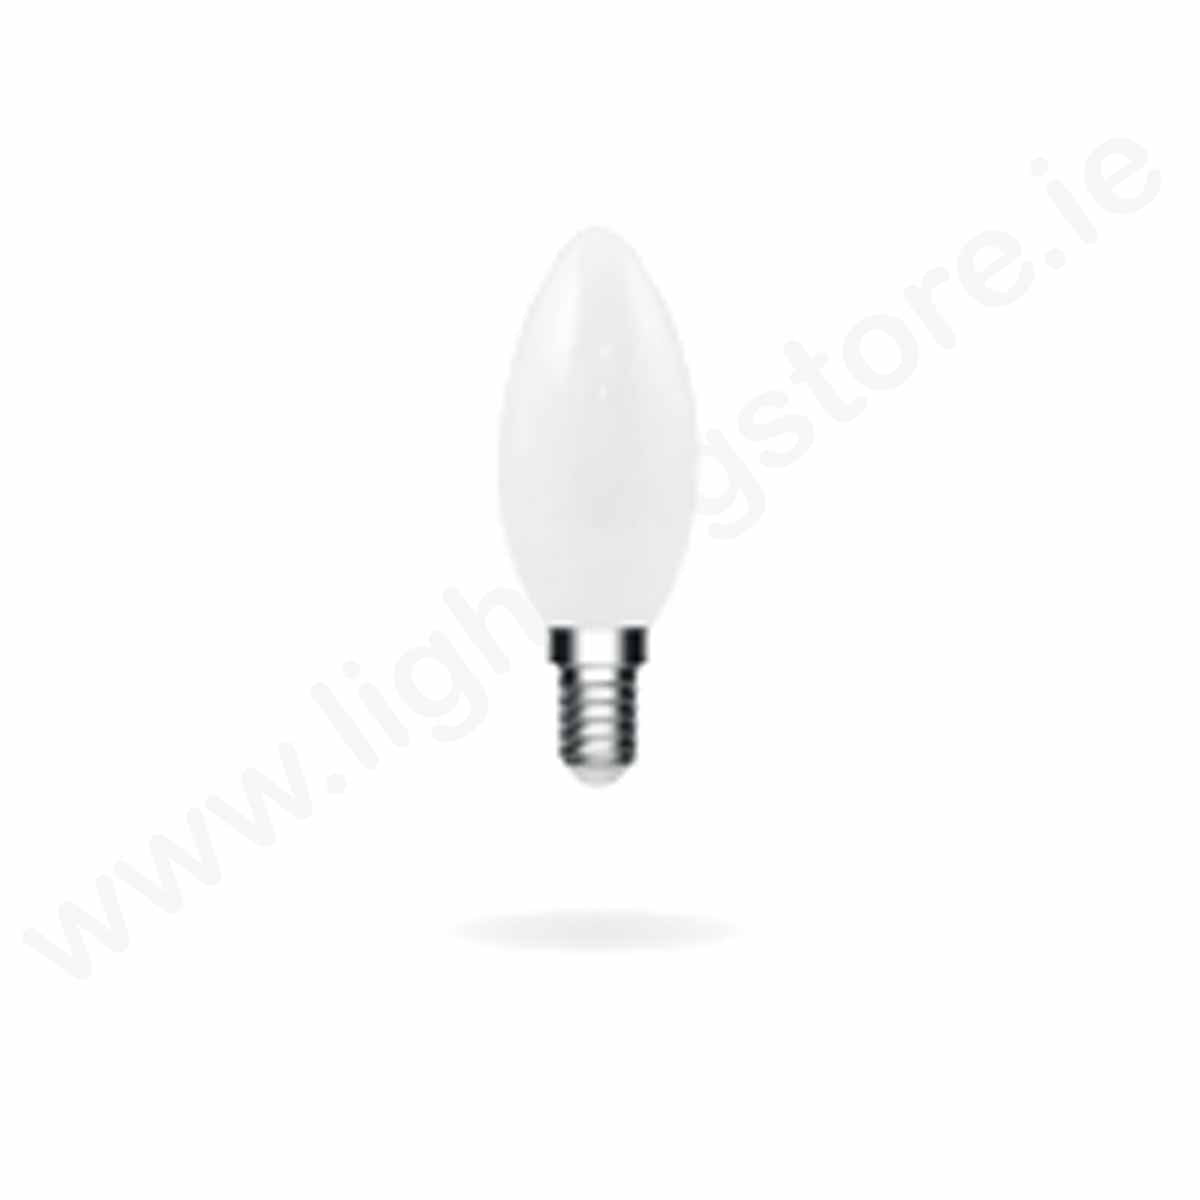 ENERGETIC E15 FROSTED CANDLE 5.4W 470LM WARM WHITE / DIMMABLE